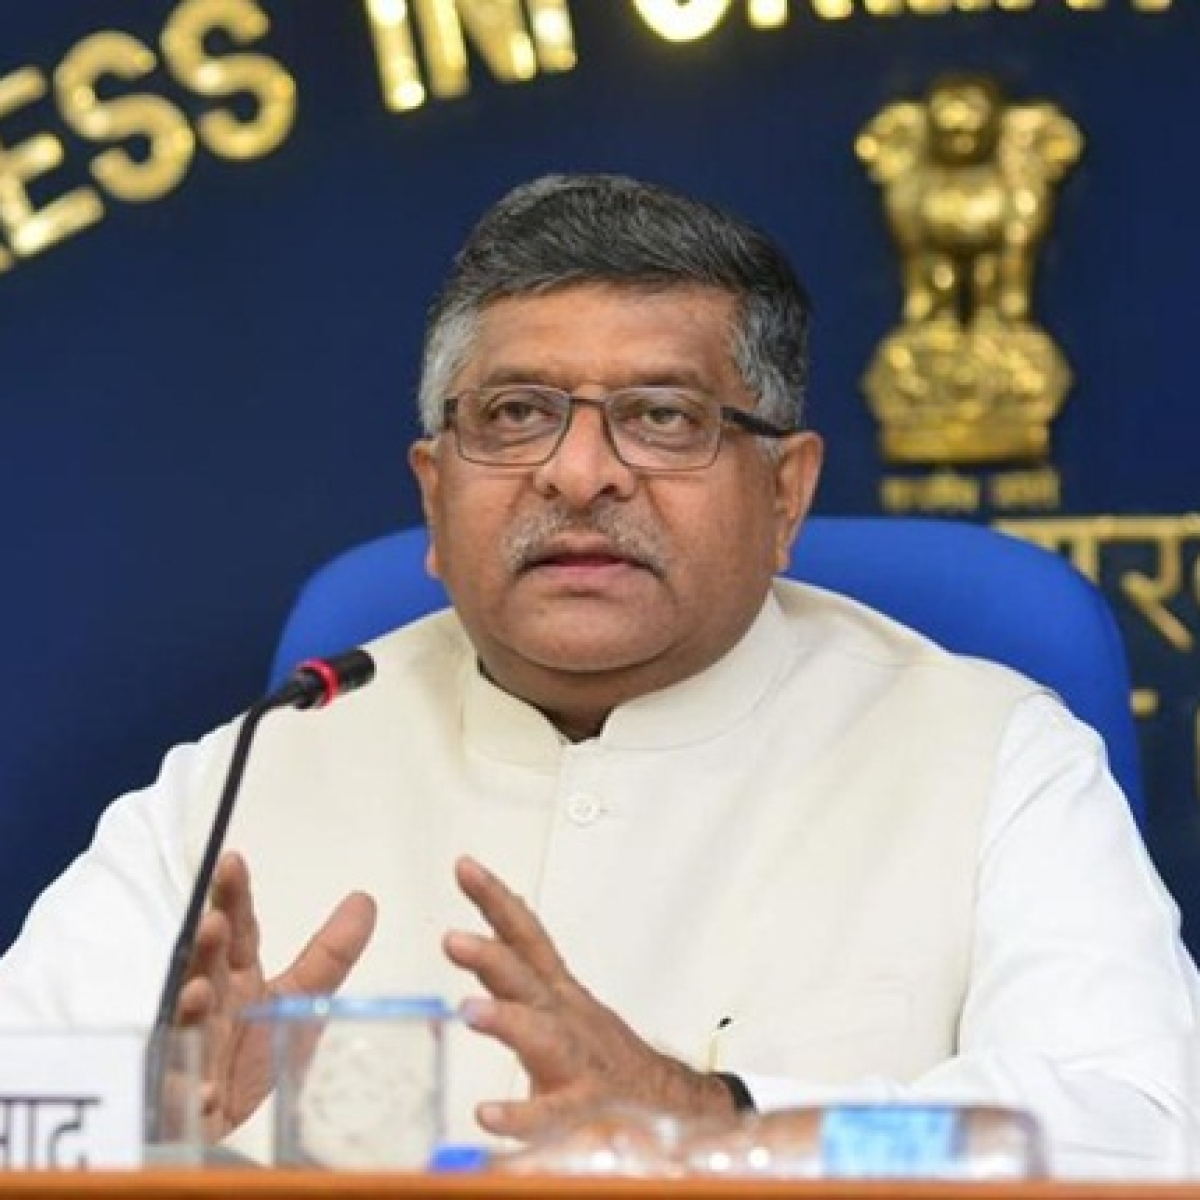 'Twitter failed to comply with IT rules': Ravi Shankar Prasad says social media giant deliberately chose path of non-compliance